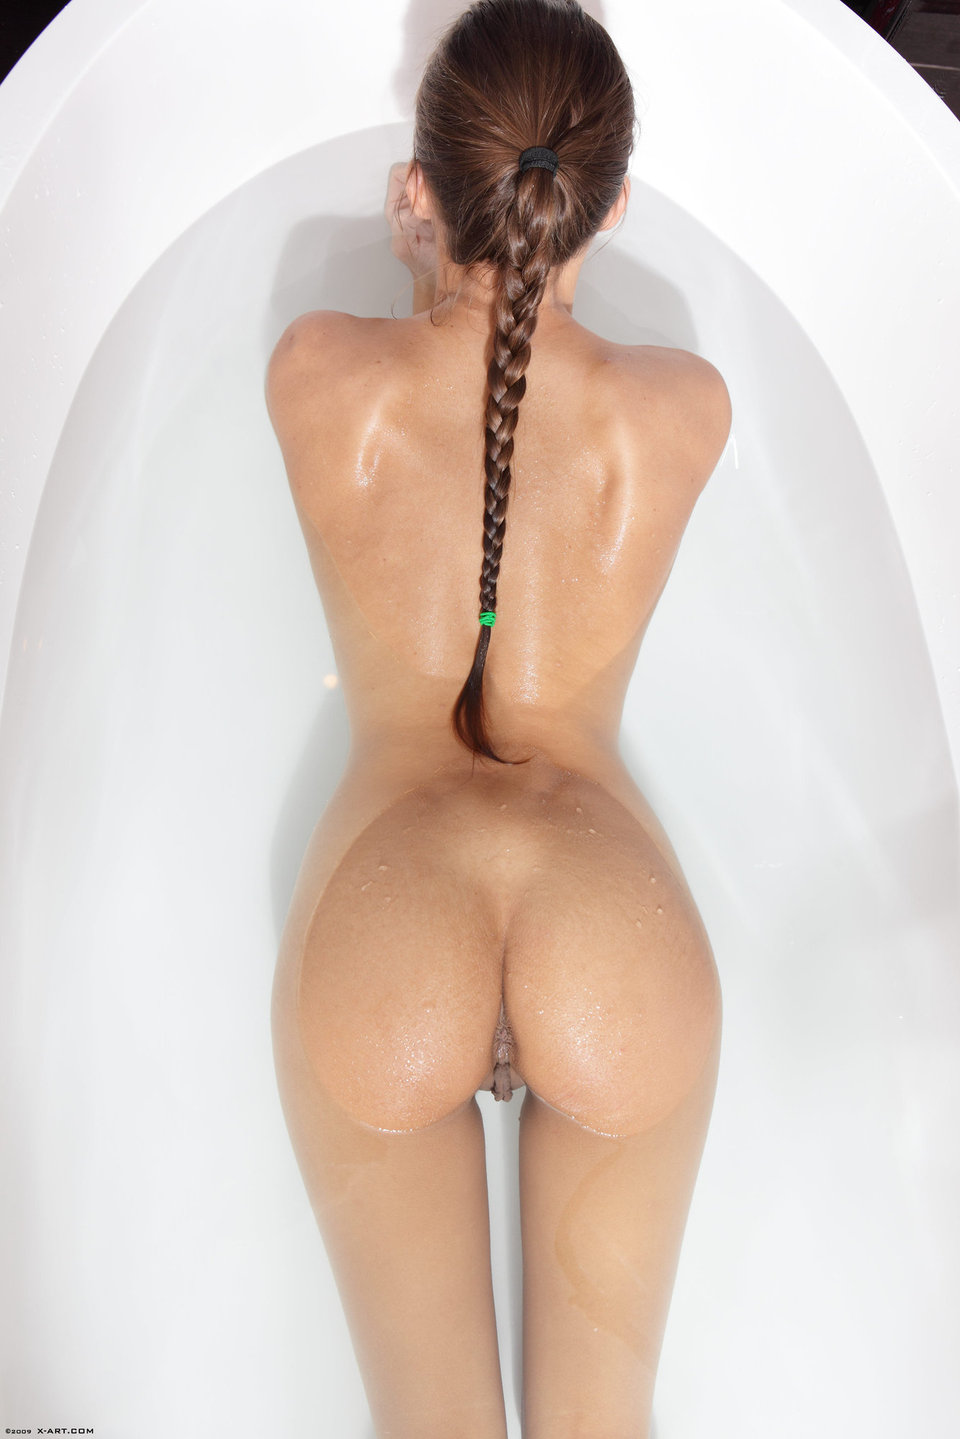 Dominique Slippery When Wet – nude photo gallery